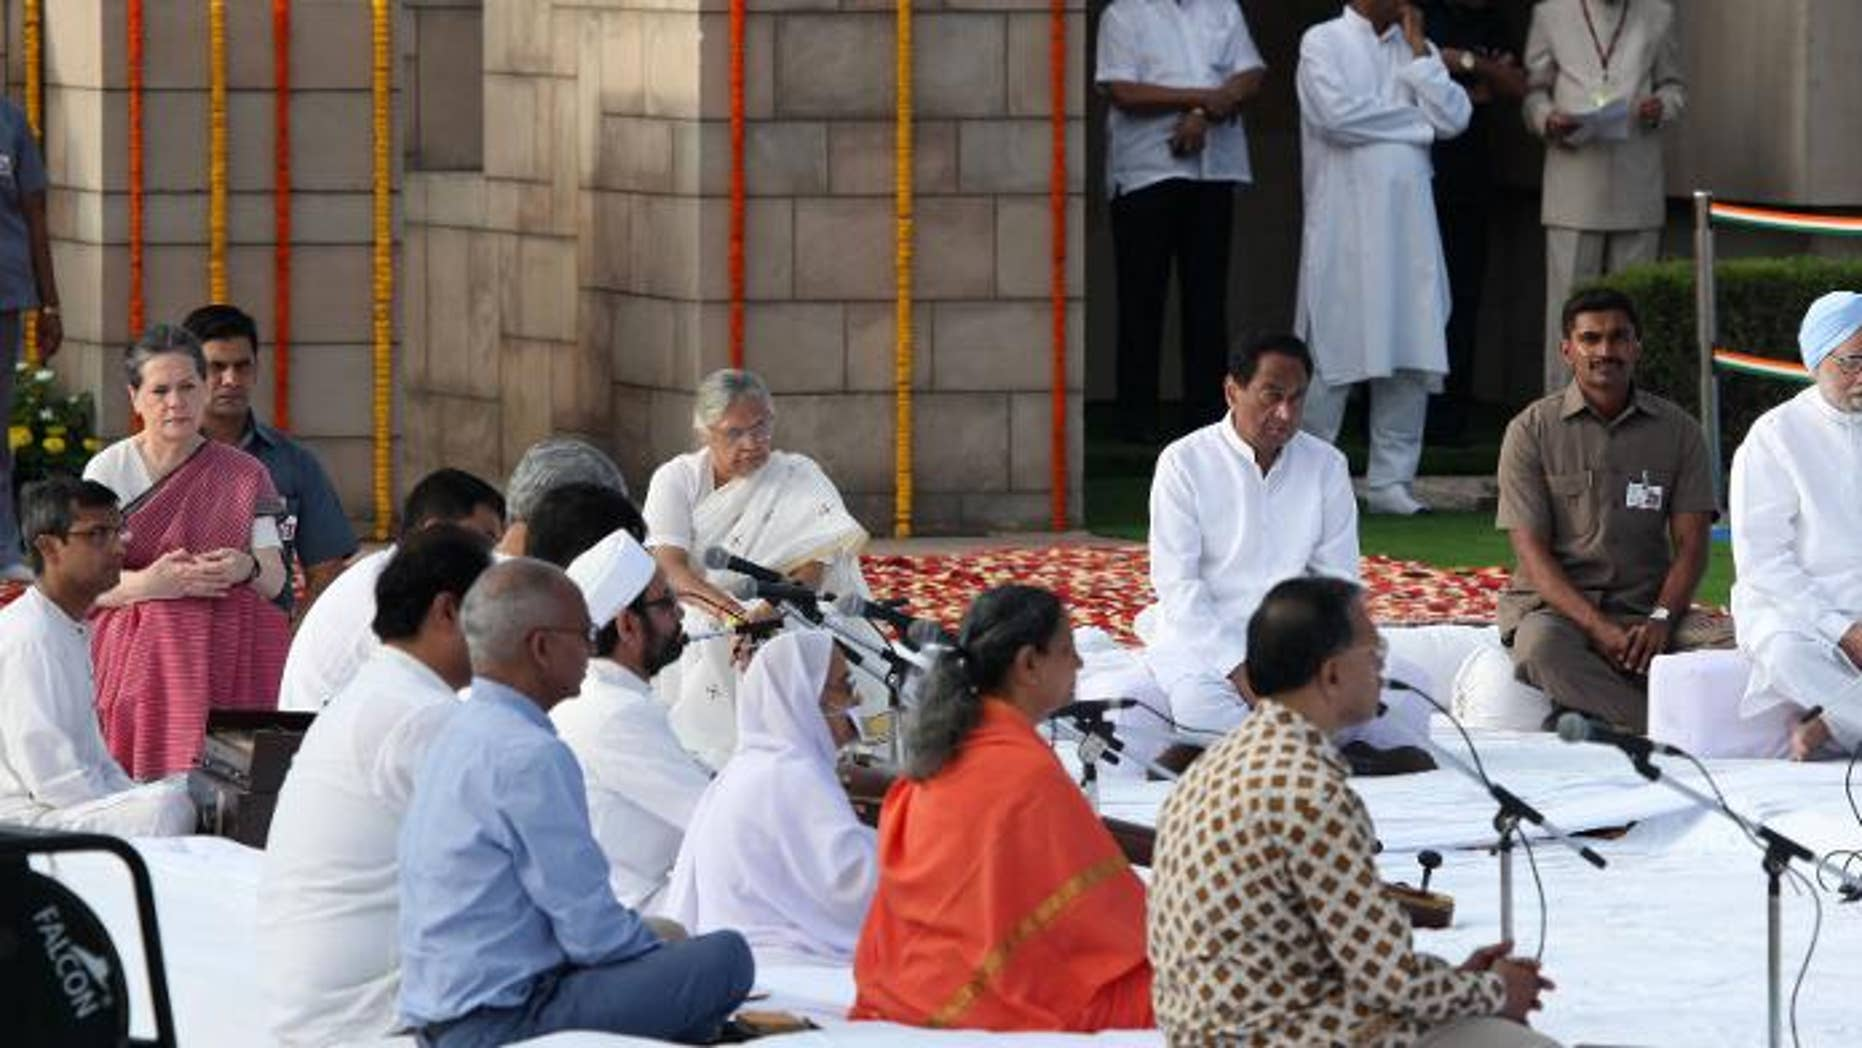 Chairperson of the Congress-led UPA government, Sonia Gandhi (L) and Indian Prime Minister Manmohan Singh (R) paying their respects at the memorial to the Father of the Nation Mahatma Gandhi at Rajghat in New Delhi on October 2, 2013